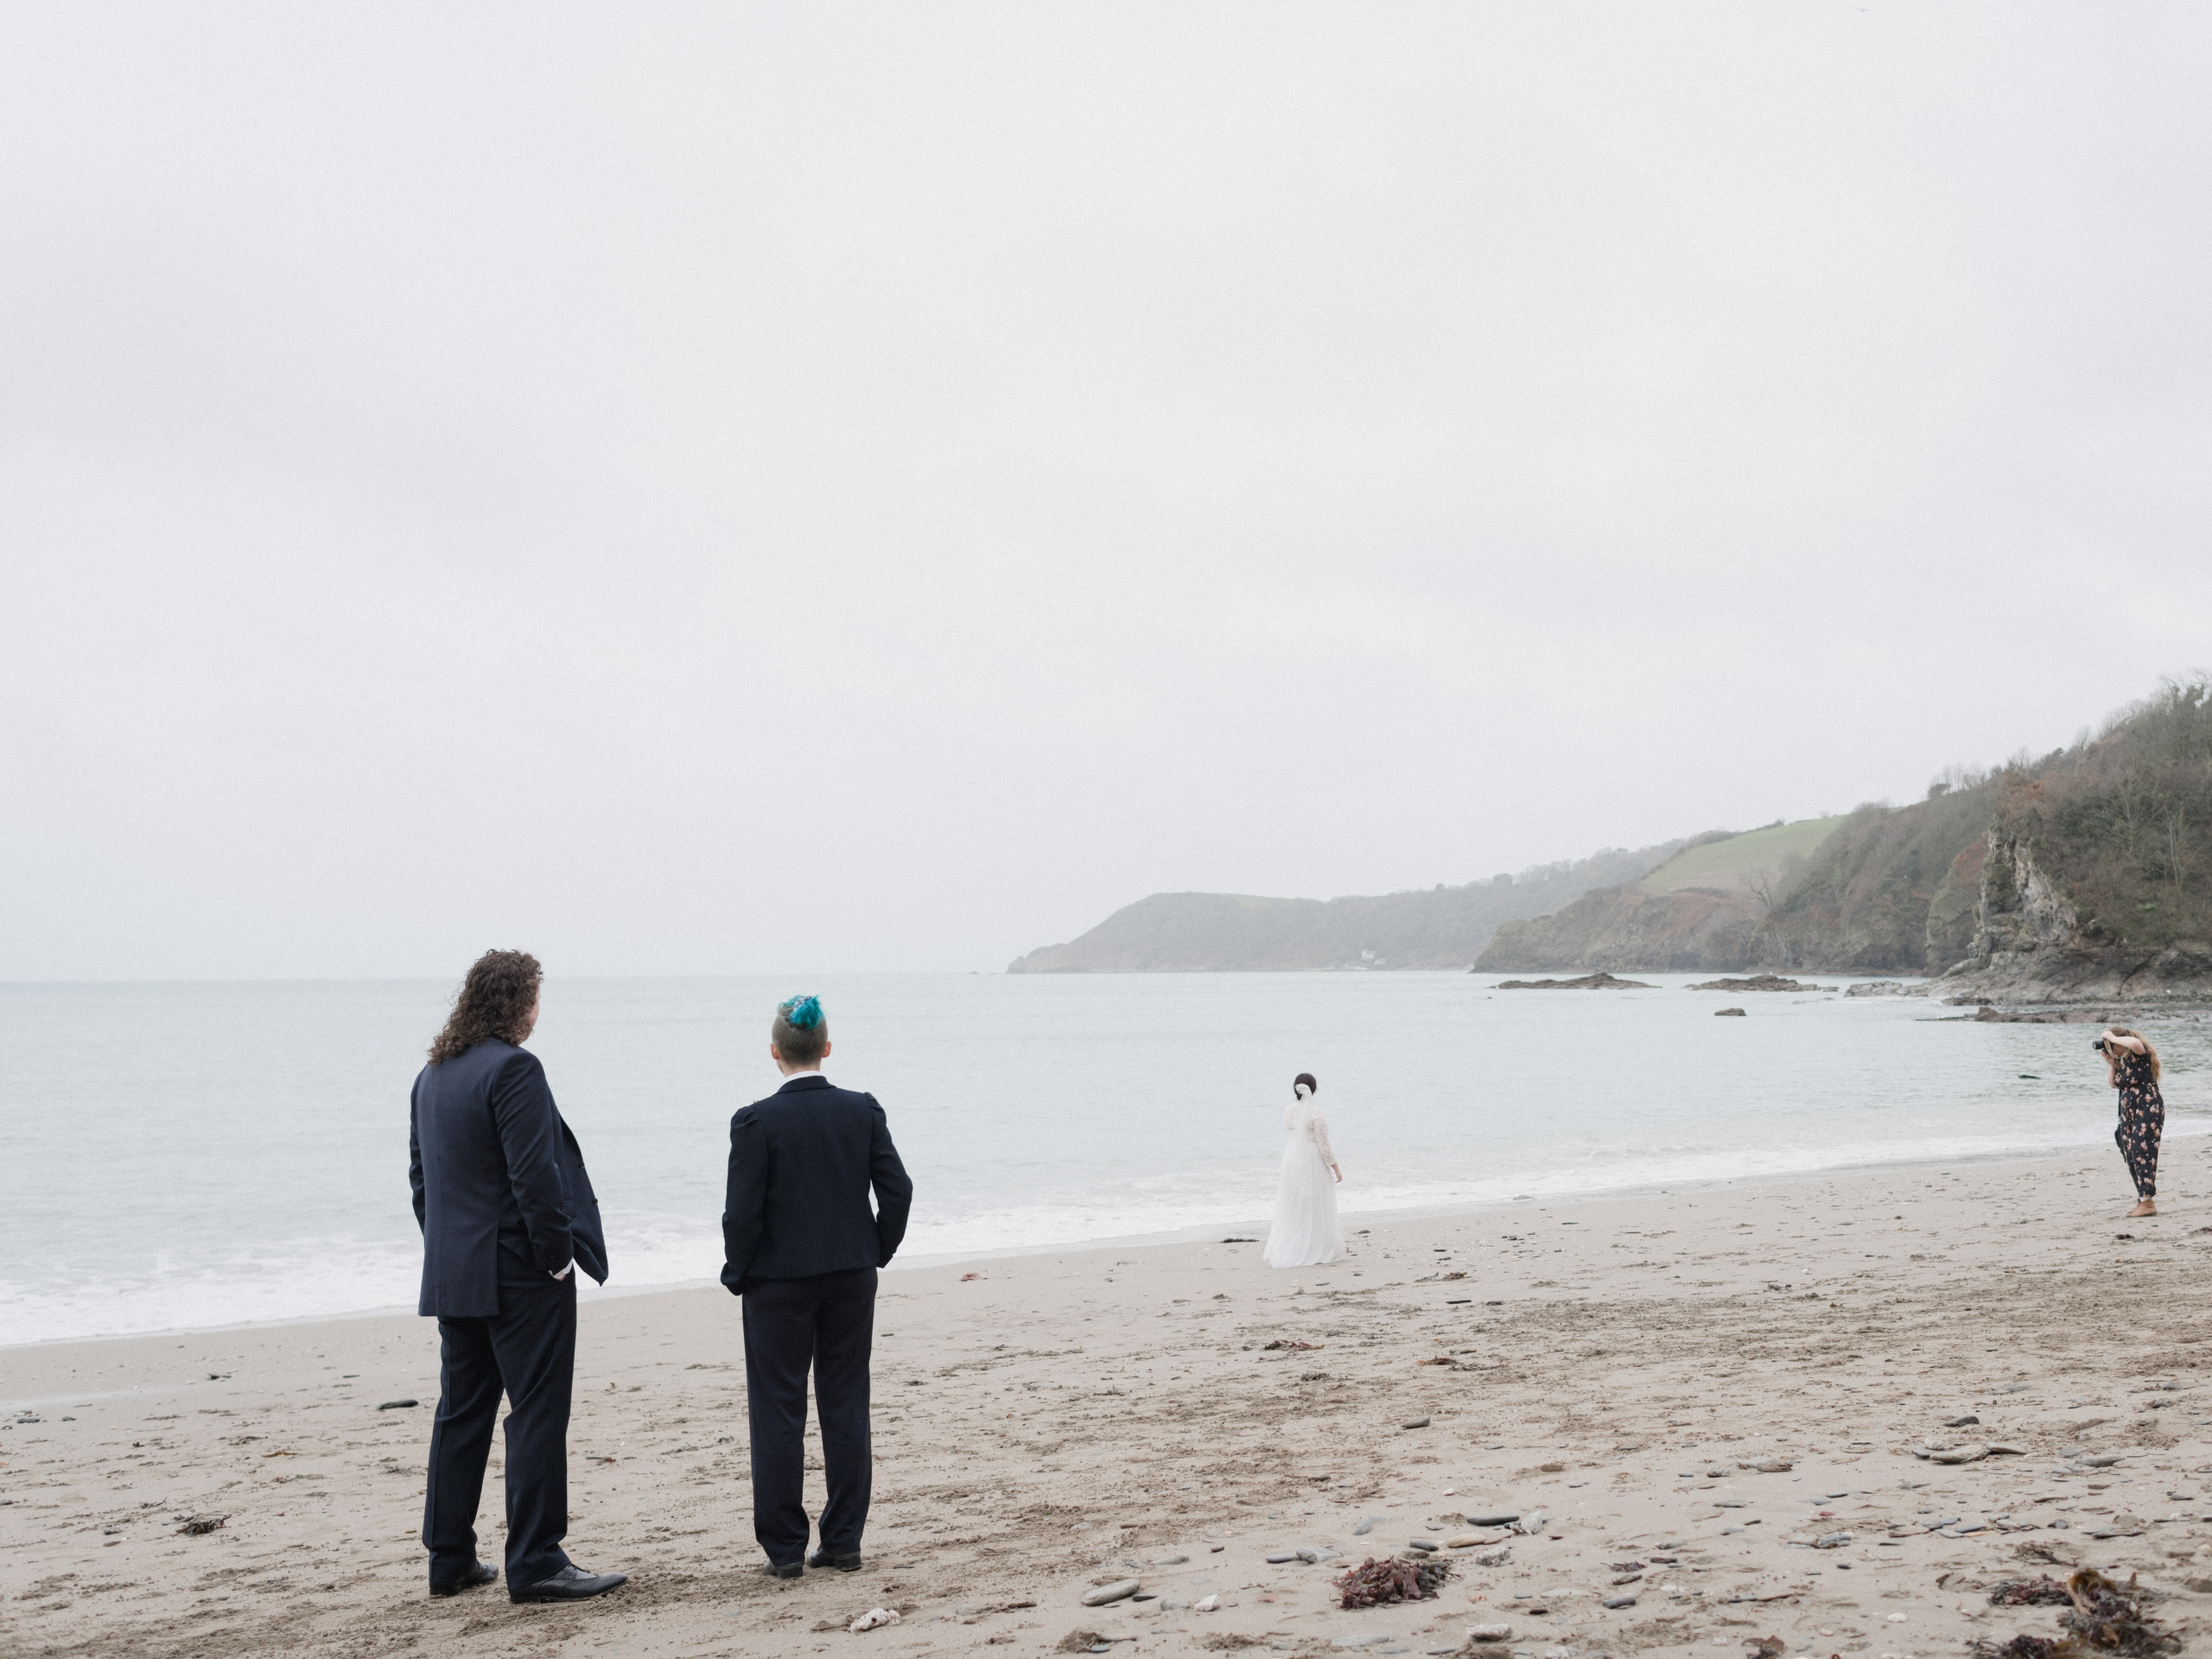 On a sandy beach by the sea, two people in suits watch a bride in a white dress being photographed in the distance